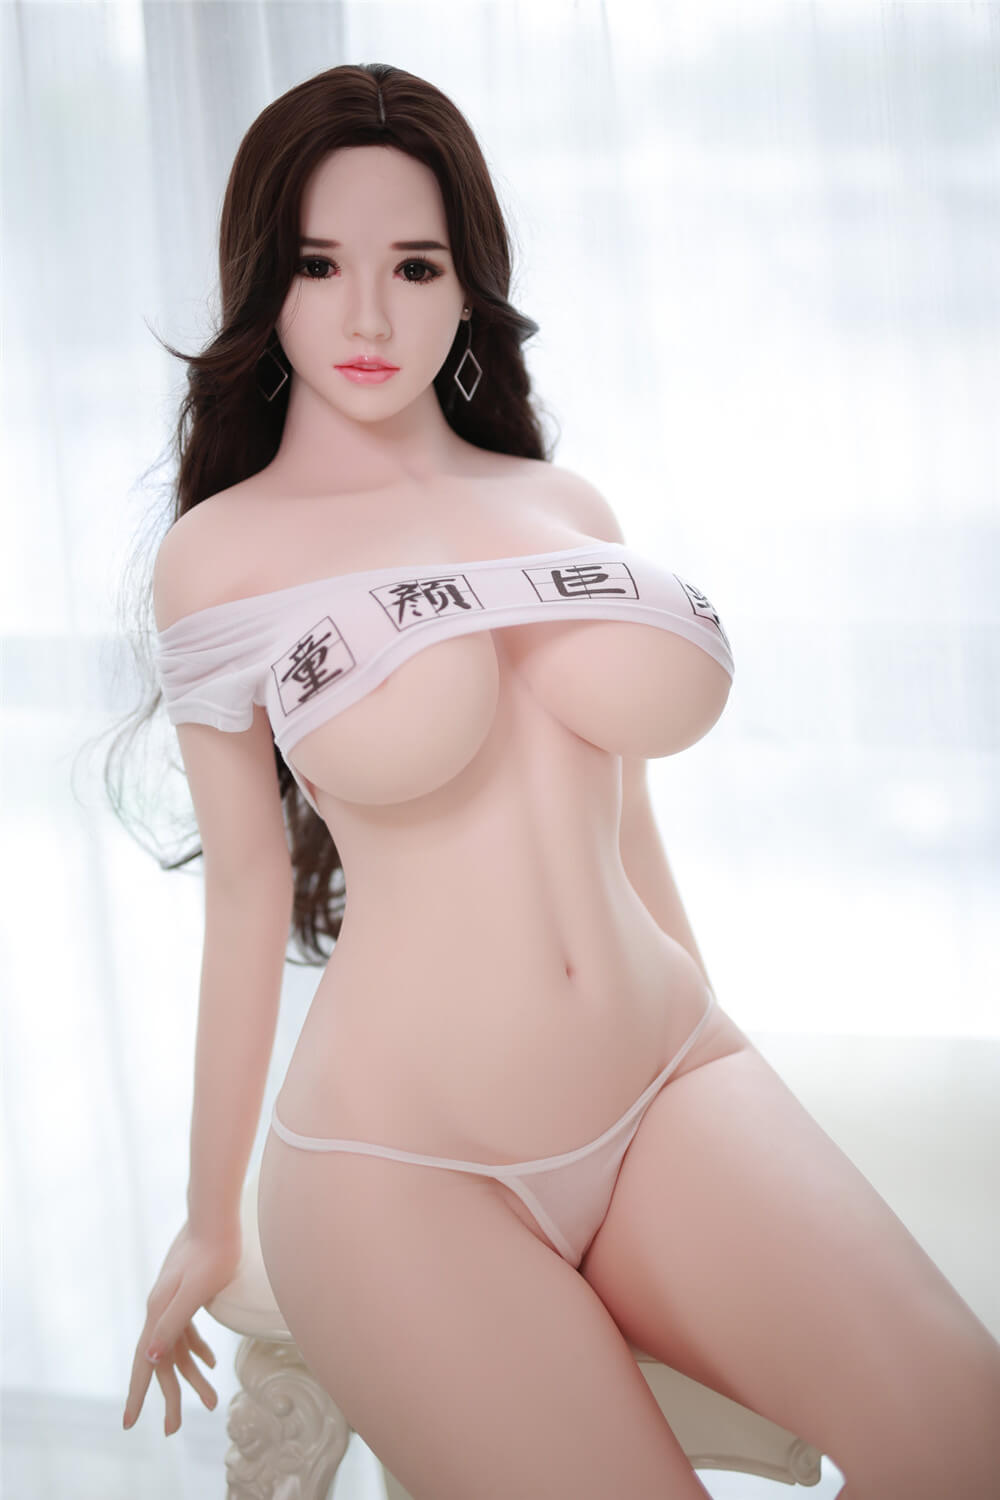 Asian Sex Doll - Maxine